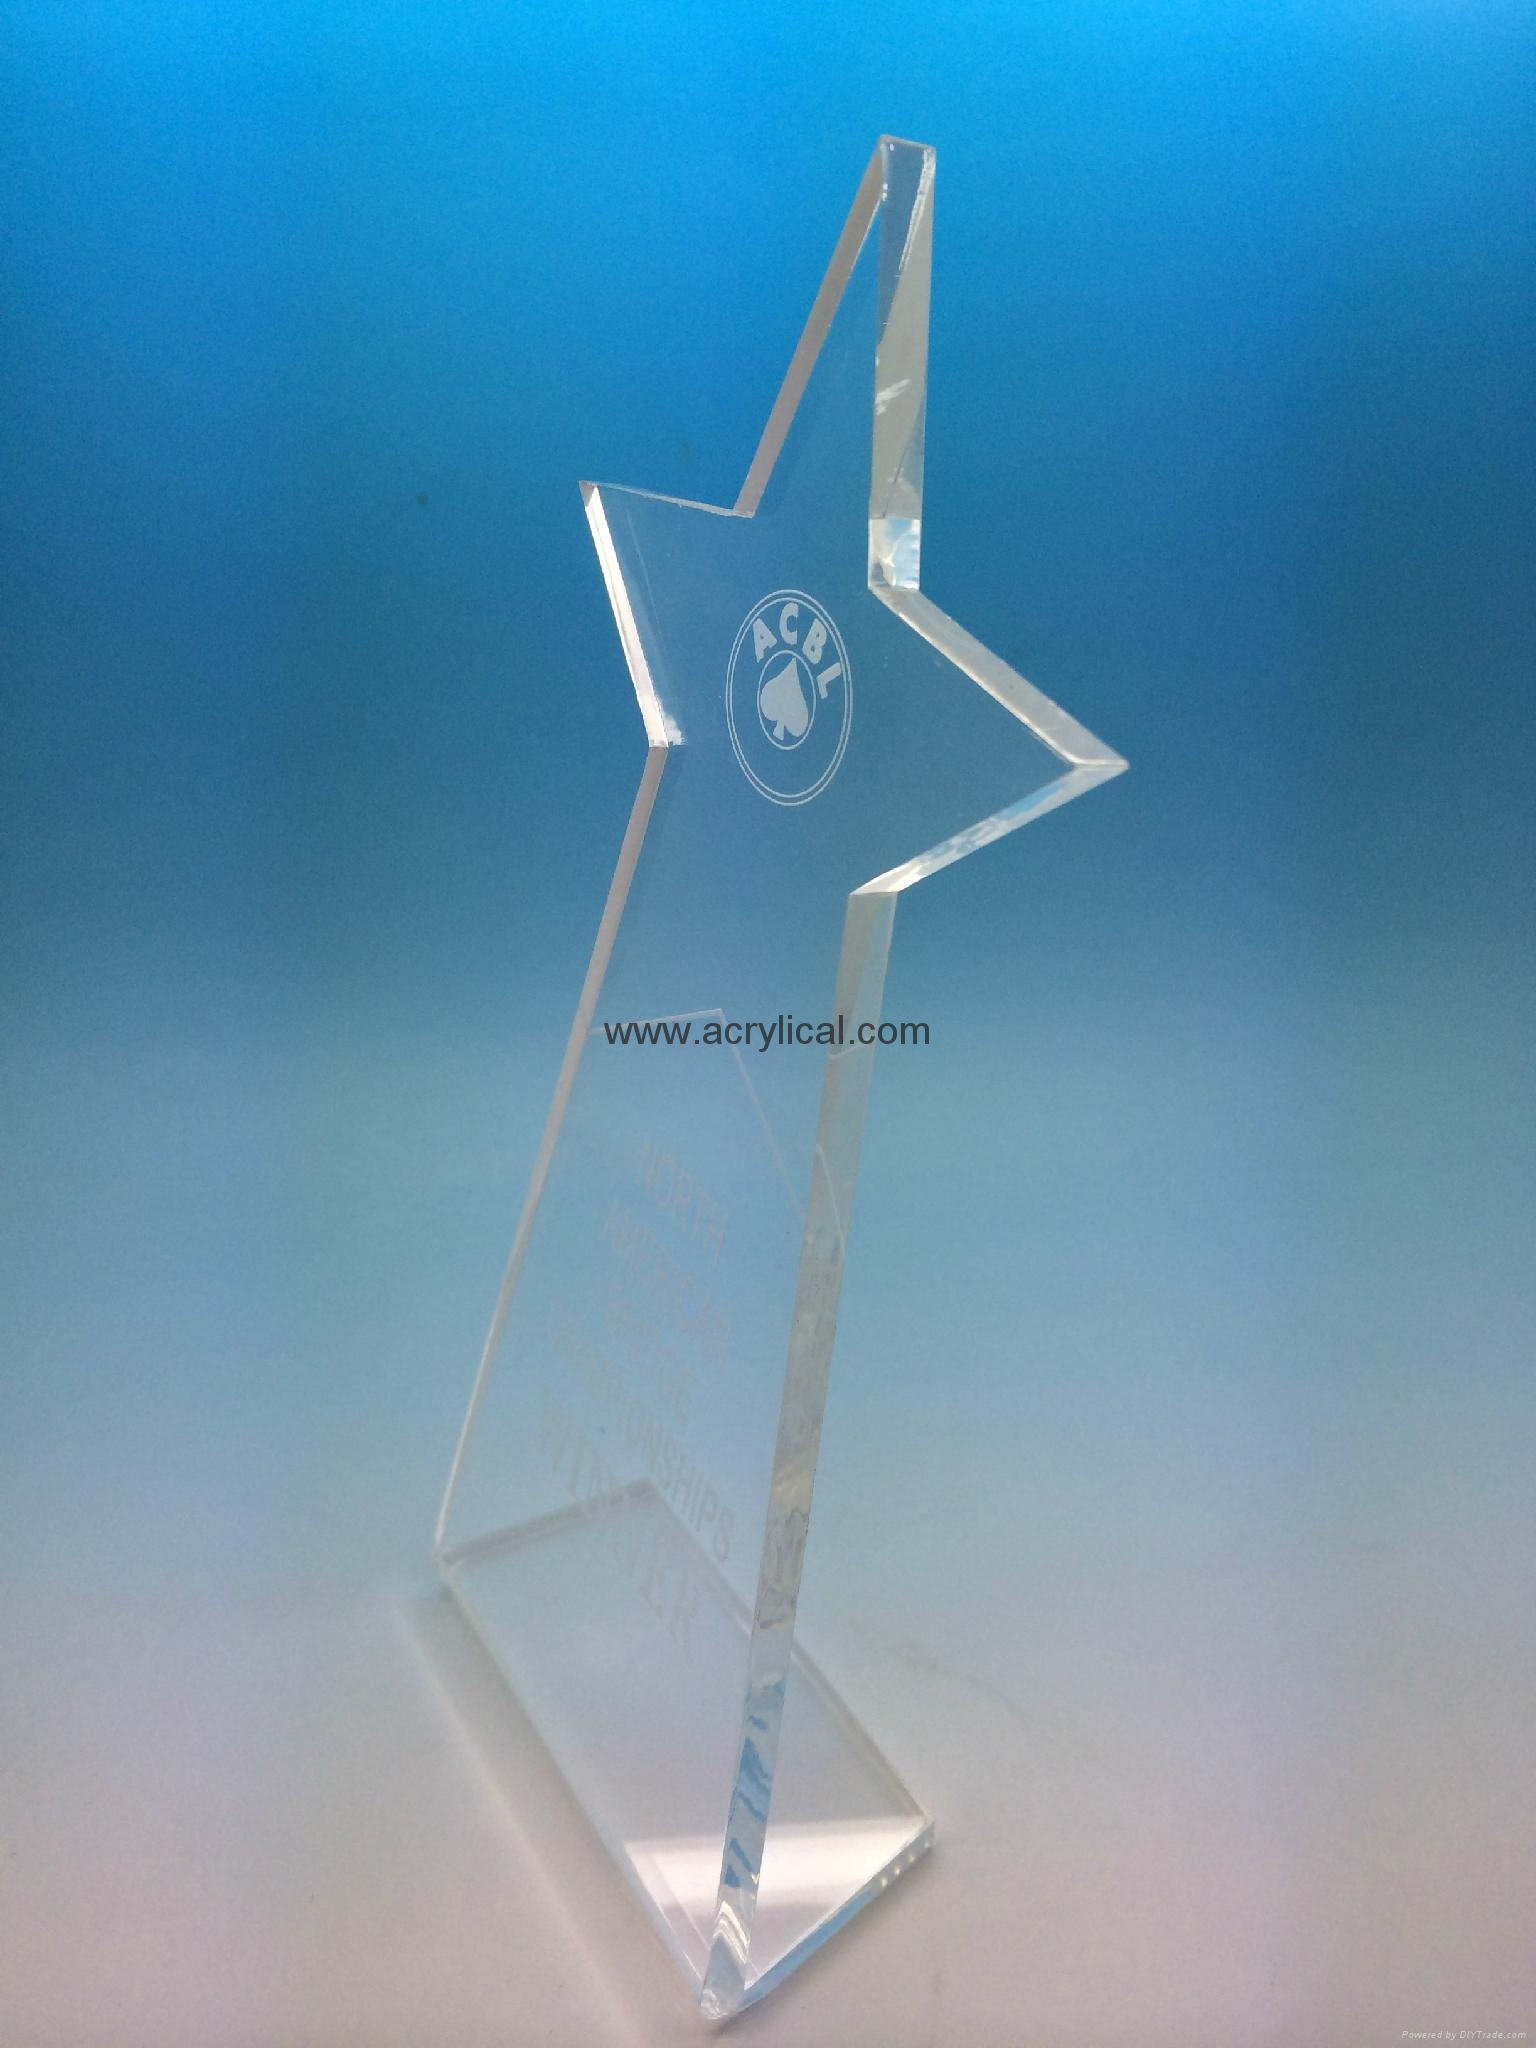 acrylic  award-logo engraving,Acrylic Award, Recognition Plaques,Corporate Awad